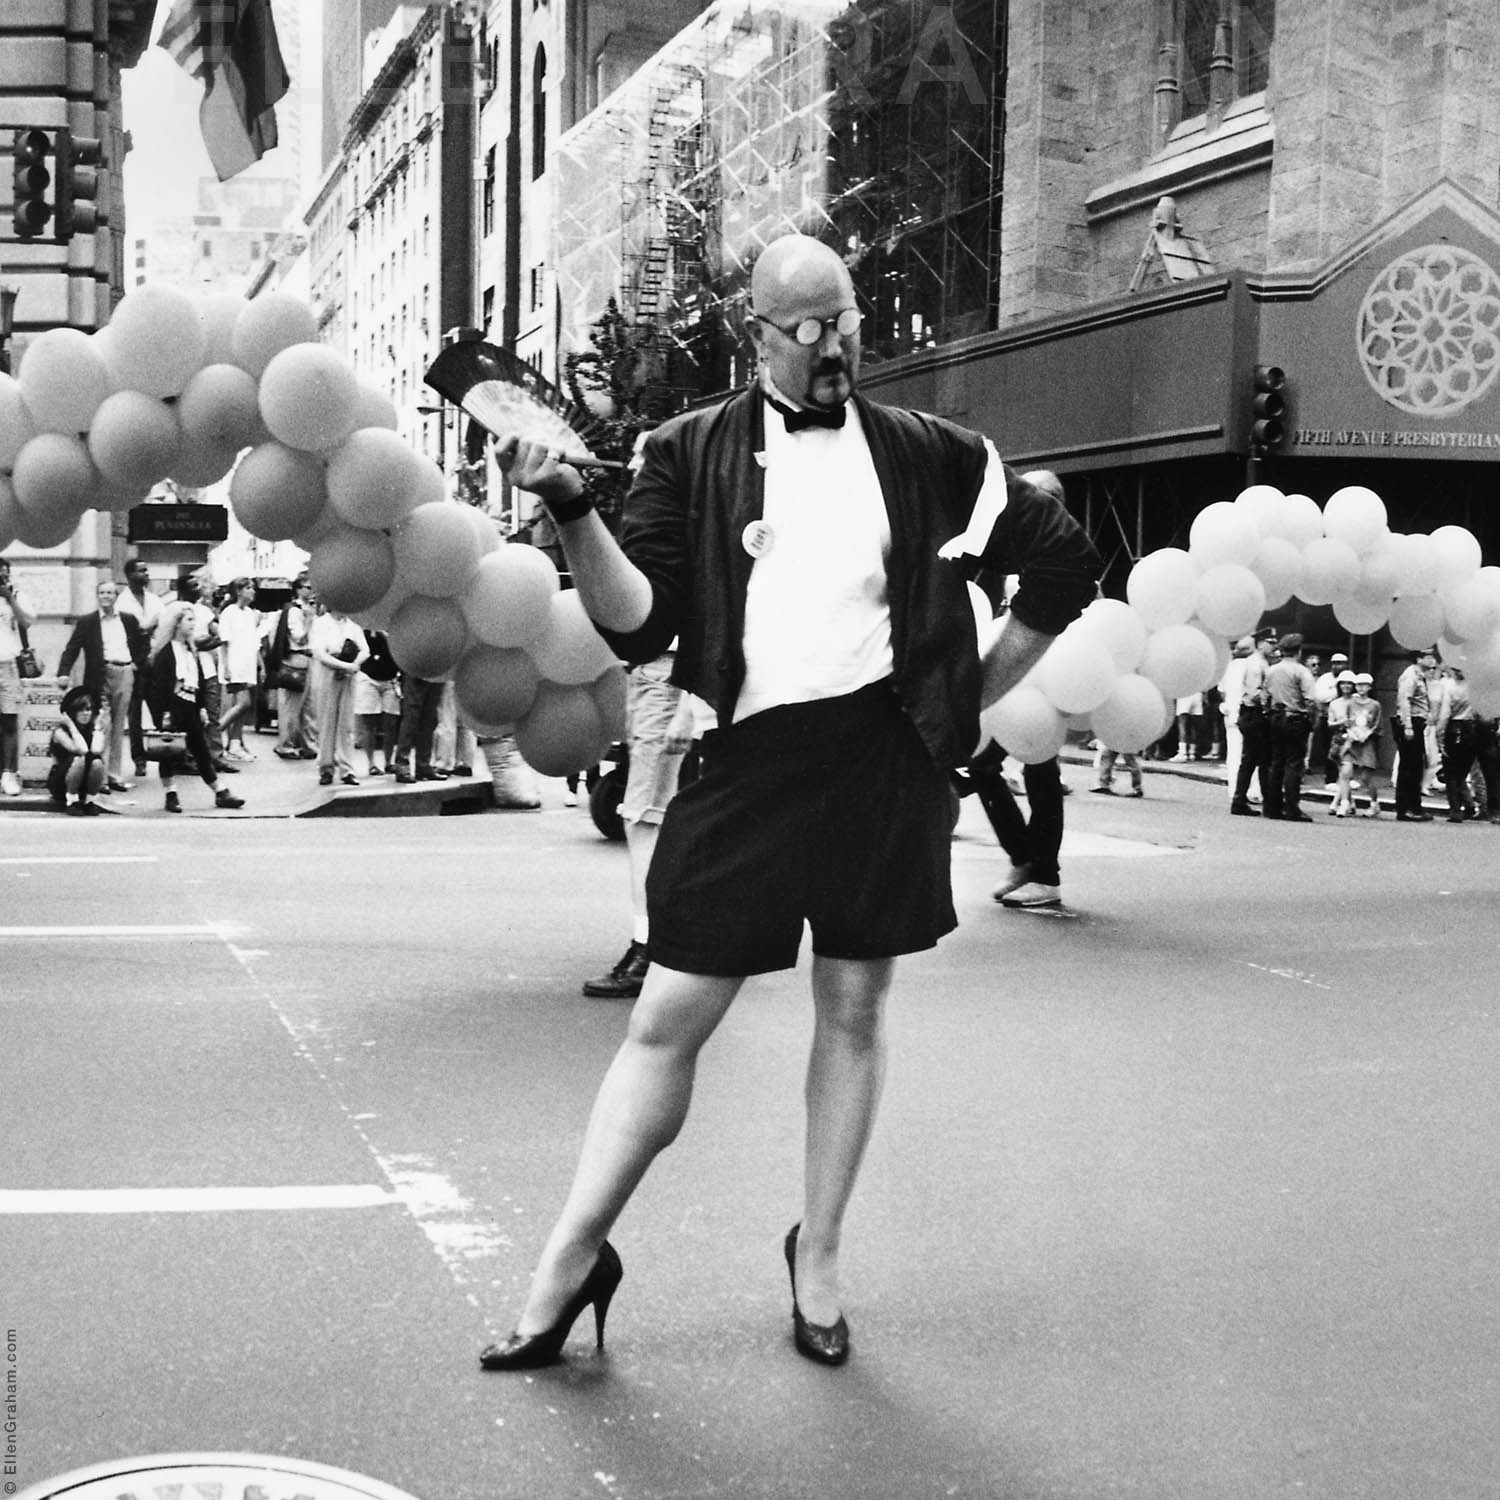 Gay Parade, 5th Avenue, New York, NY, 1990